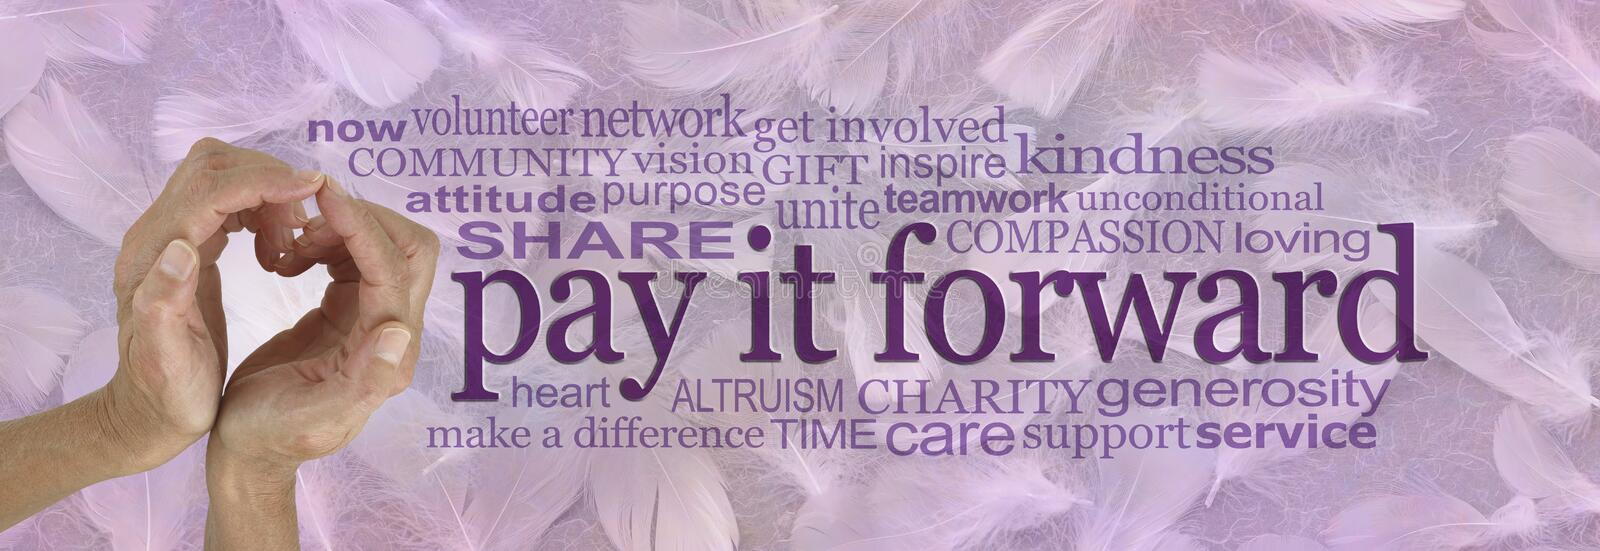 Angelic Pay it forward campaign banner vector illustration